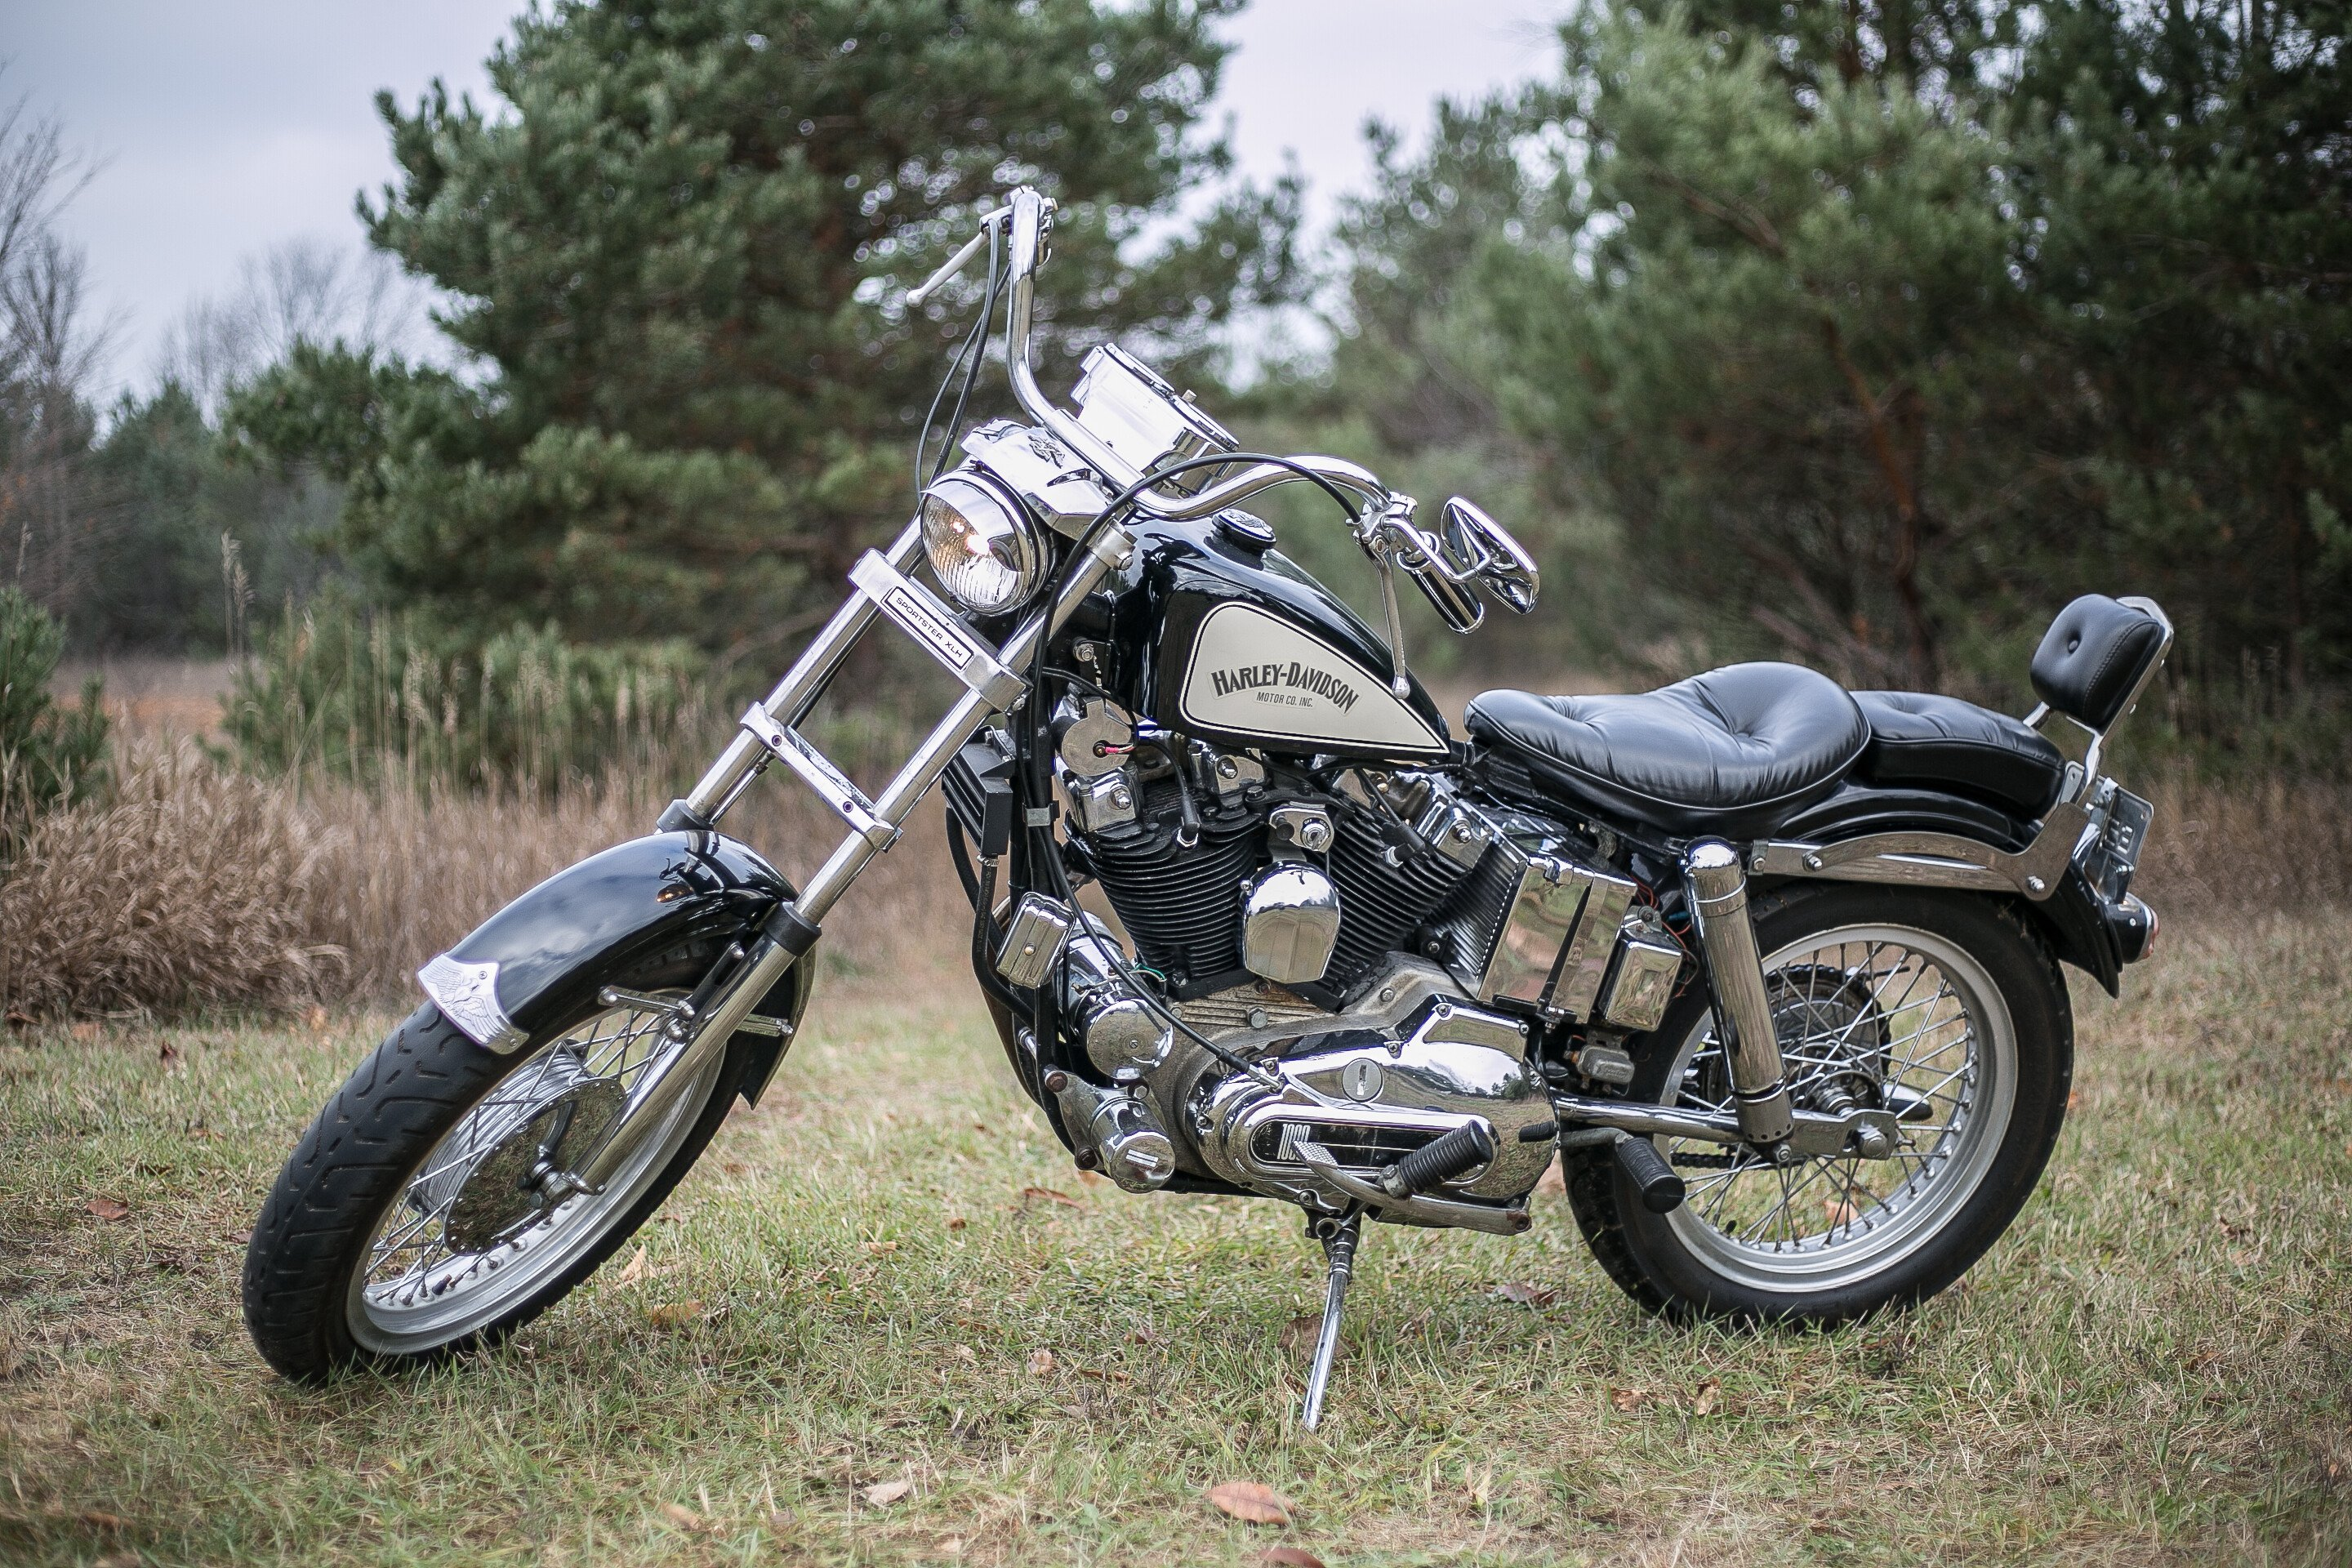 1972 Harley Davidson Sportster Motorcycles Sale 1000 200508018 Pictures